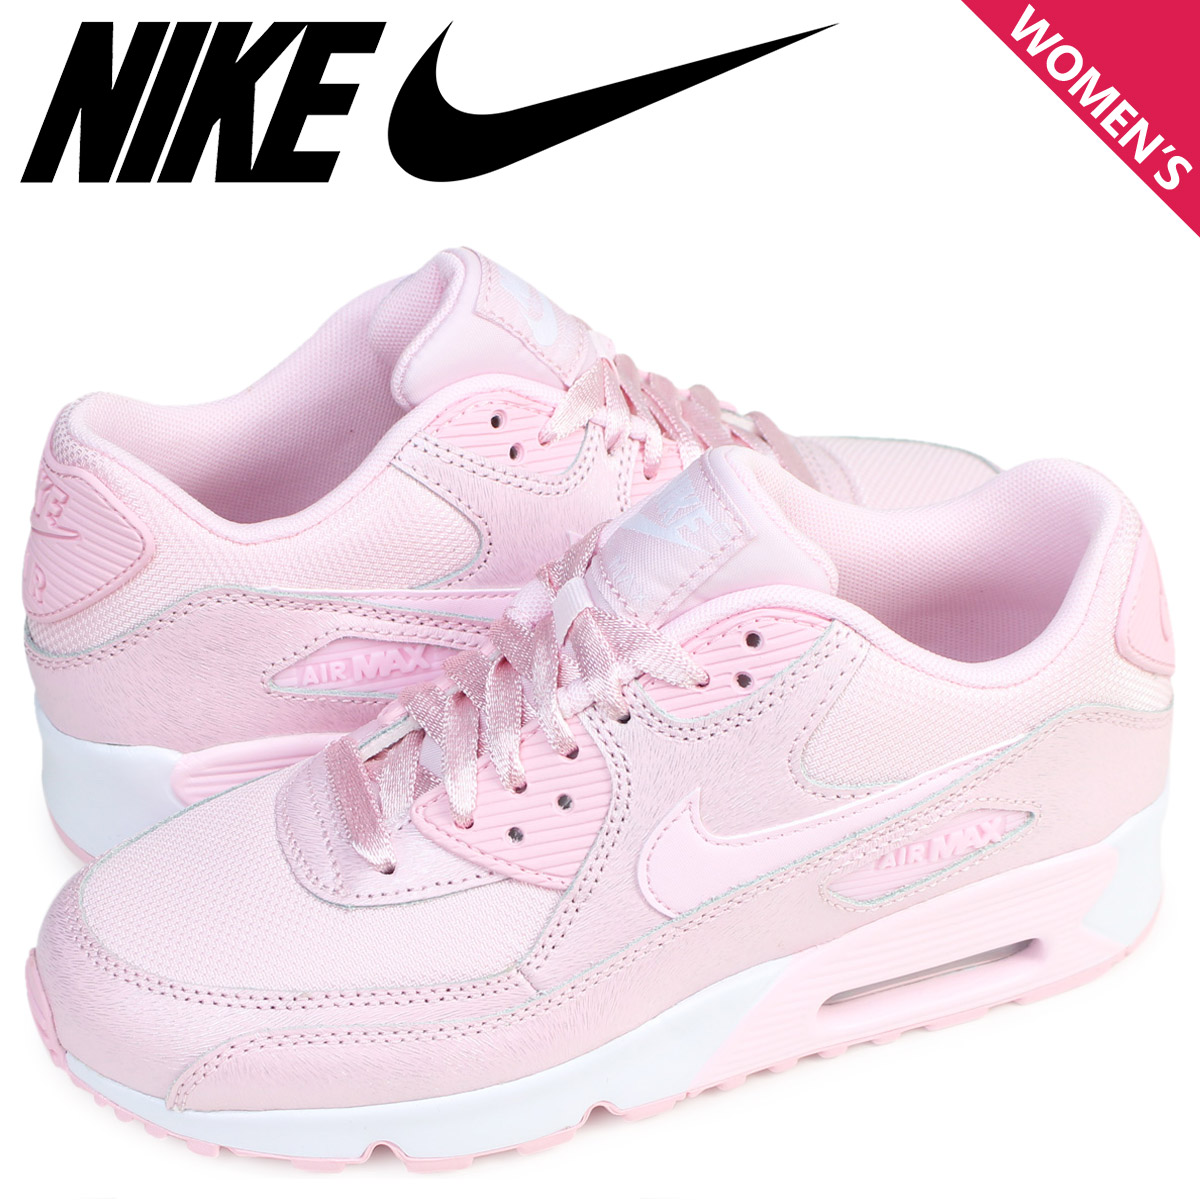 NIKE Kie Ney AMAX 90 Lady's sneakers AIR MAX 90 SE MESH GS 880,305 600 shoes pink